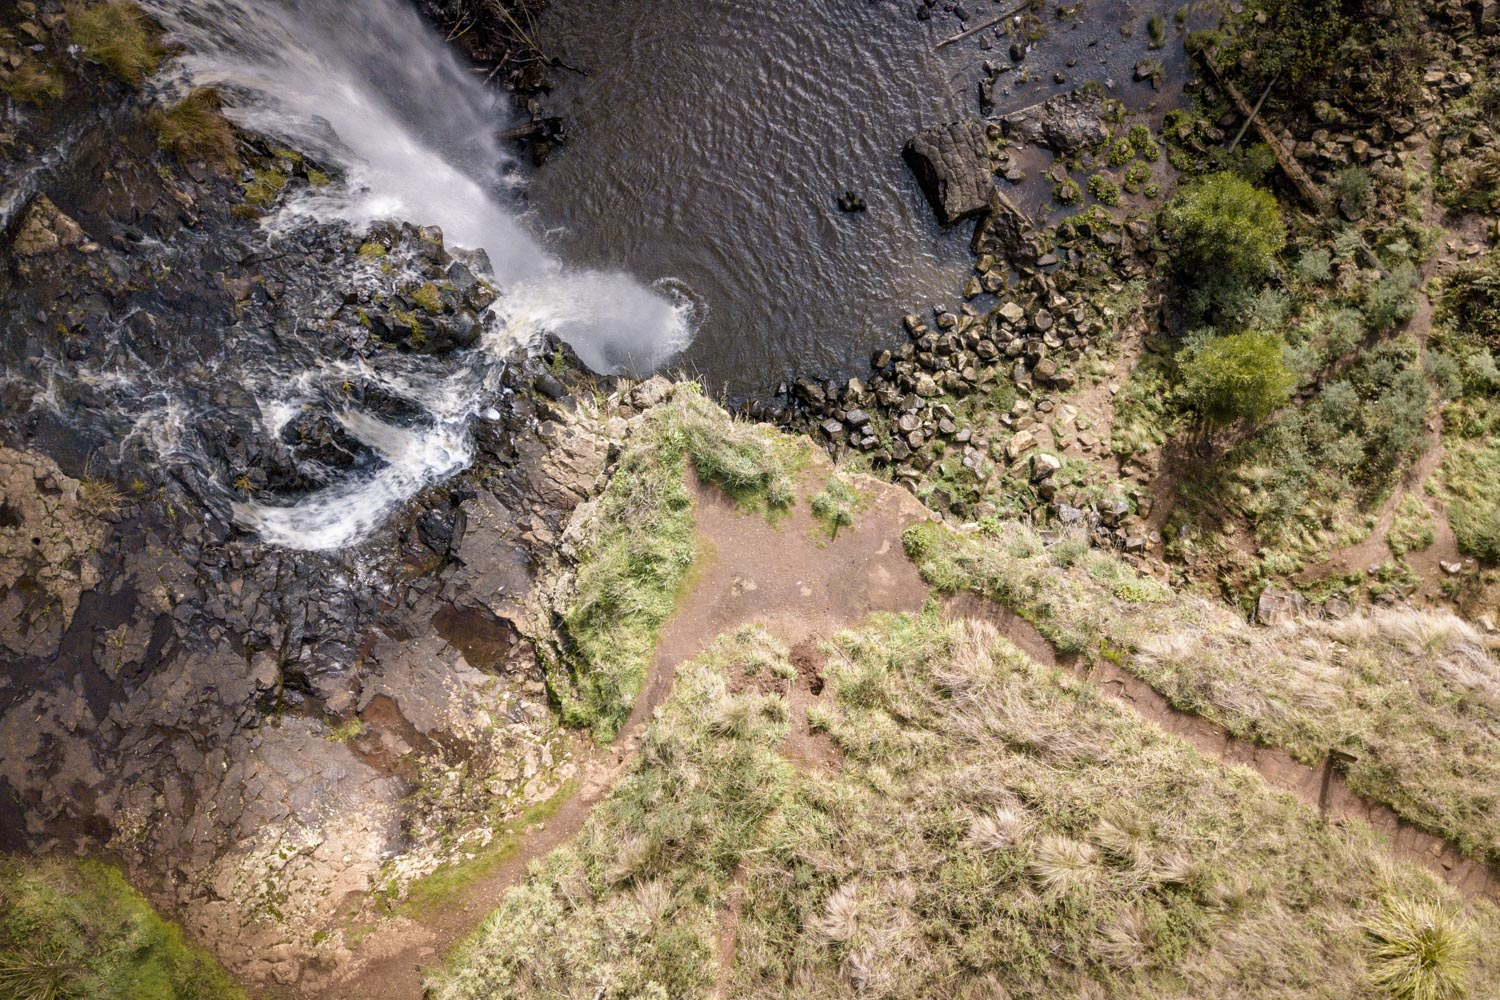 The view from the air. This shows the paths along the highly unstable edge. There is remnants of an old fence that has since collapsed to the falls below. The cleared section marks a popular selfie point.